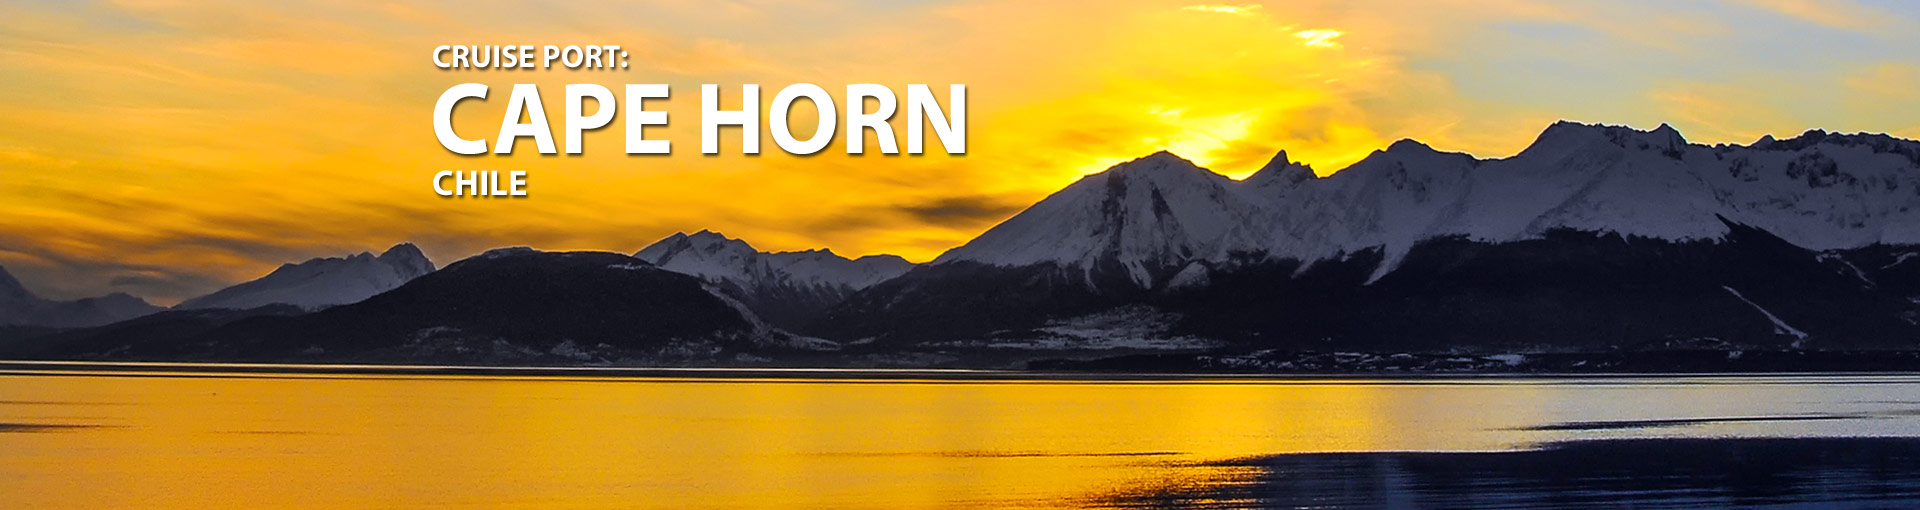 Cruises to Cape Horn, Chile